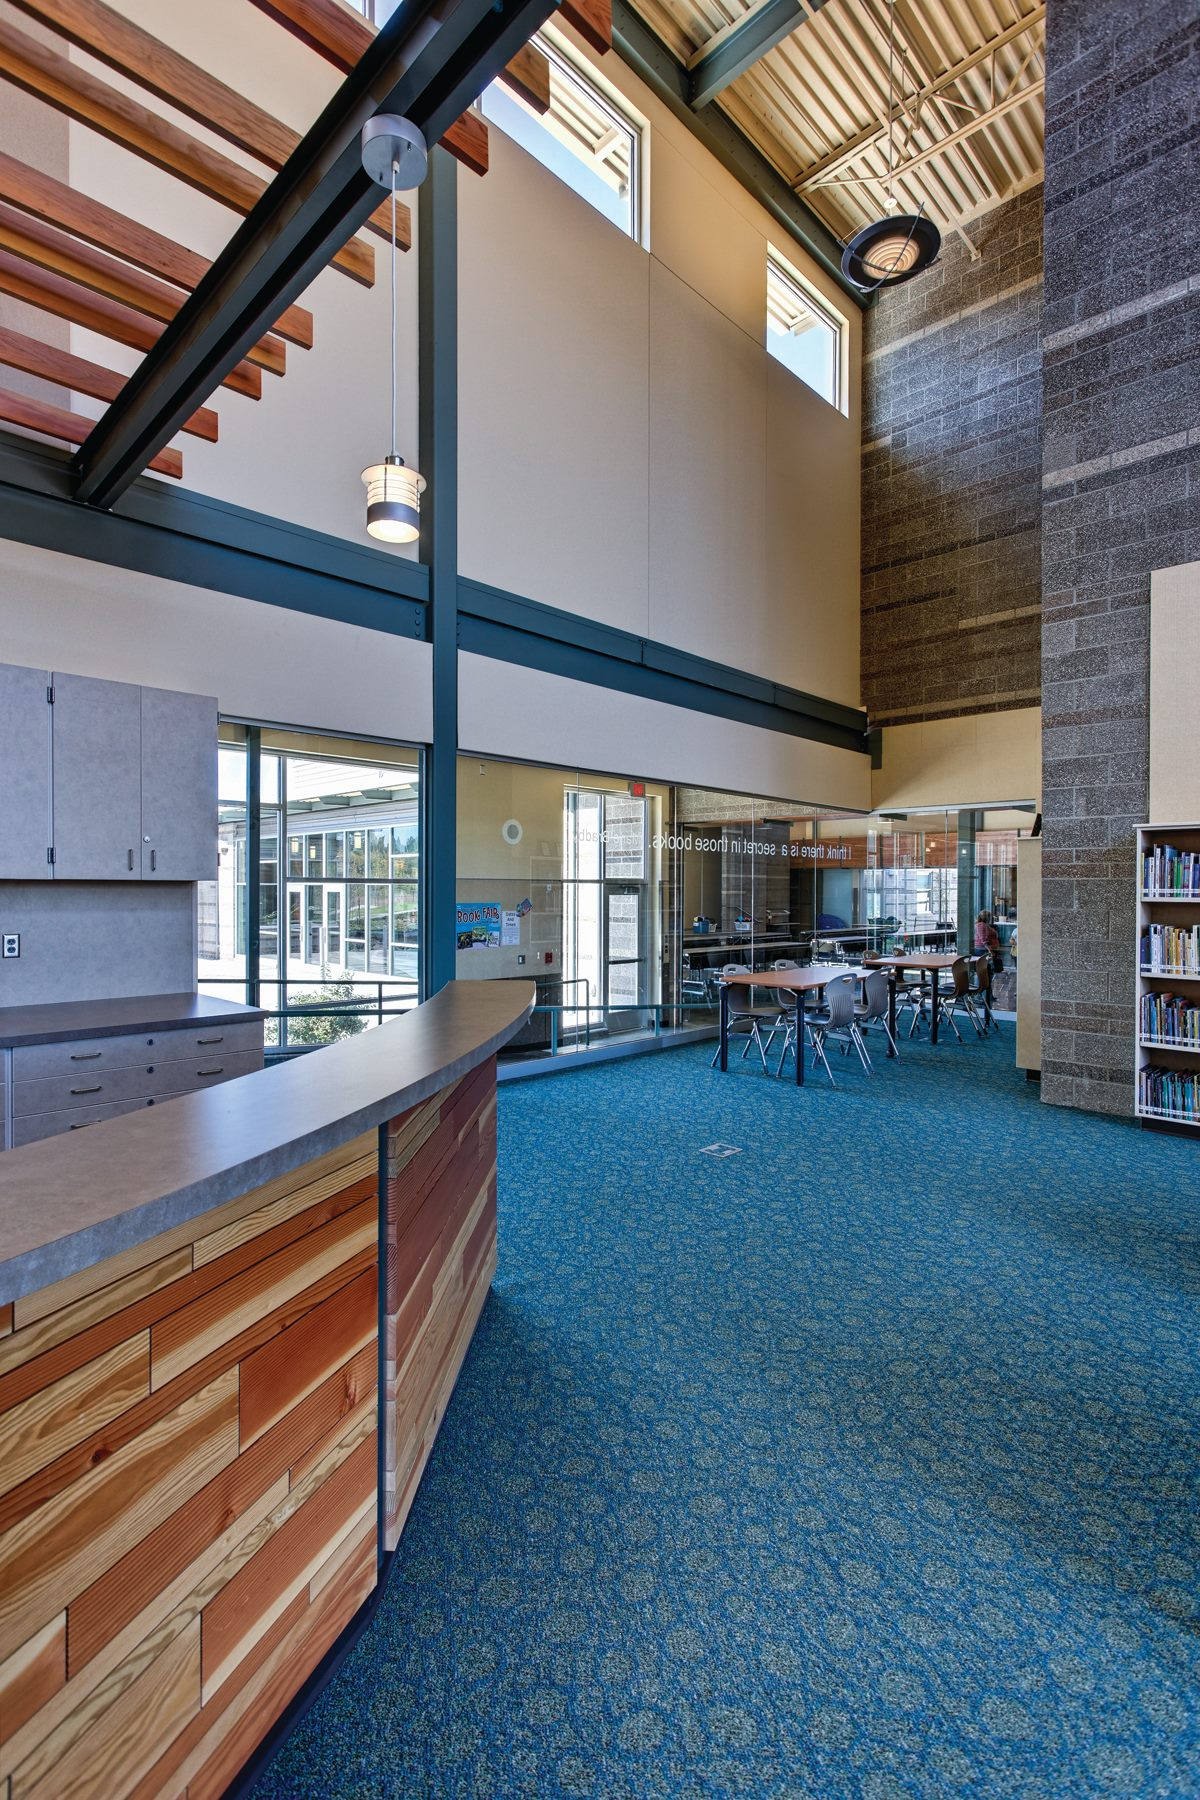 Sherwood Elementary and Middle School   Rachel Waldron was lead interior designer on this project with a team of approximately 6 architects, to include the project manager. Finishes, Floor finish plan, and the Stair railing design are they key contributions Rachel had toward the project.